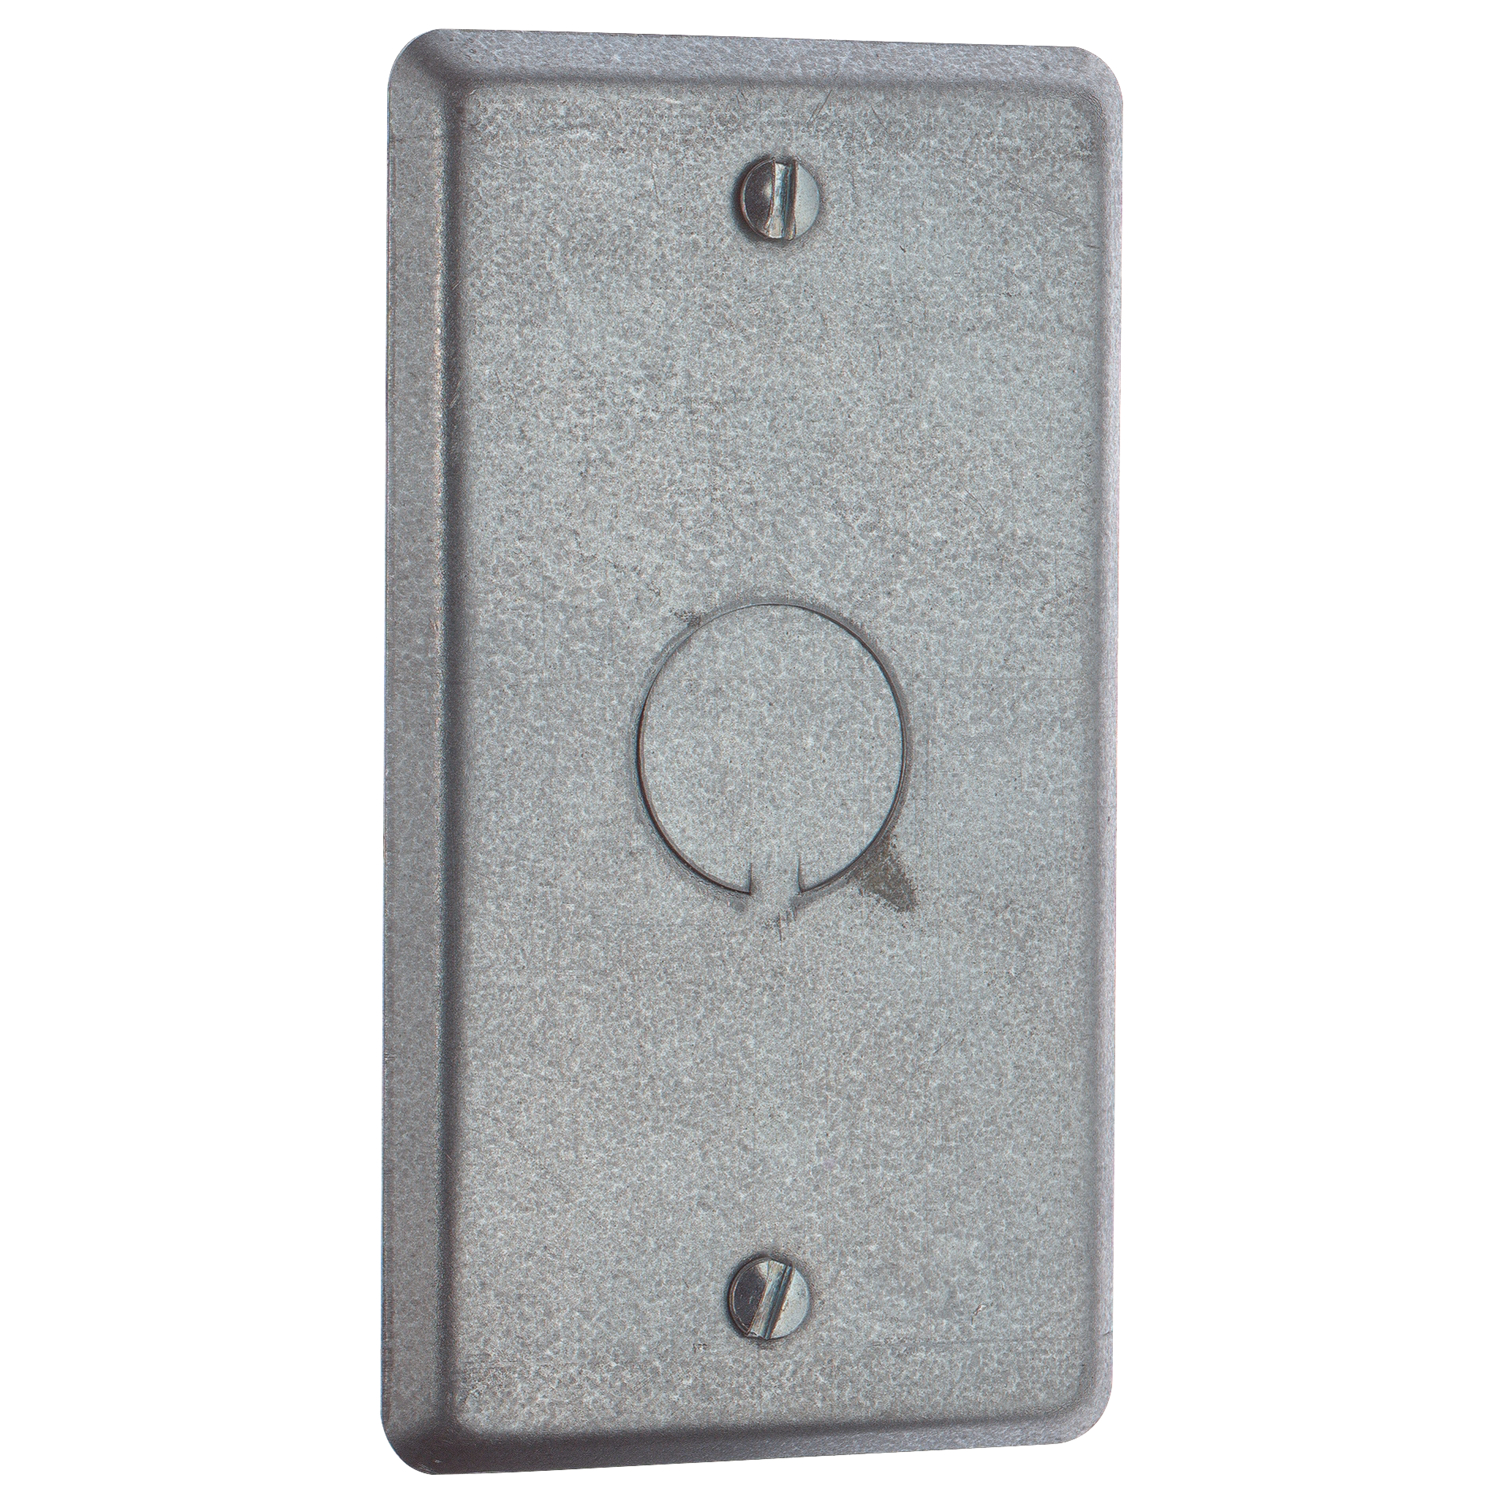 Steel City,58-C-6,Steel City® 58-C-6 Utility Outlet Box Cover, 4 in L x 2-1/8 in W, Steel